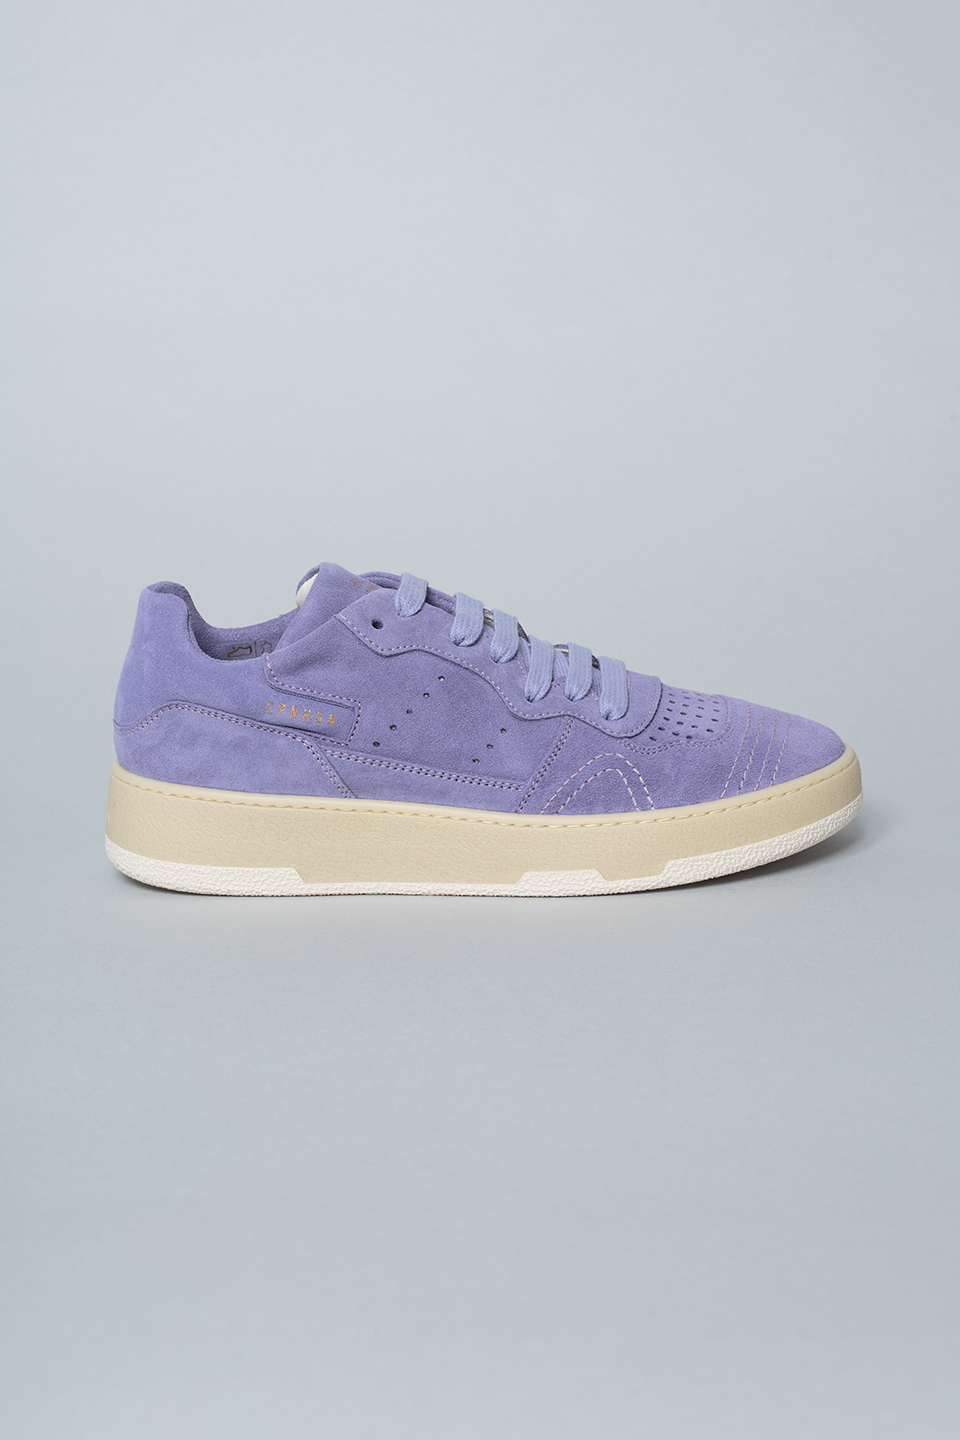 CPH463 crosta soft lilac - alternative 2